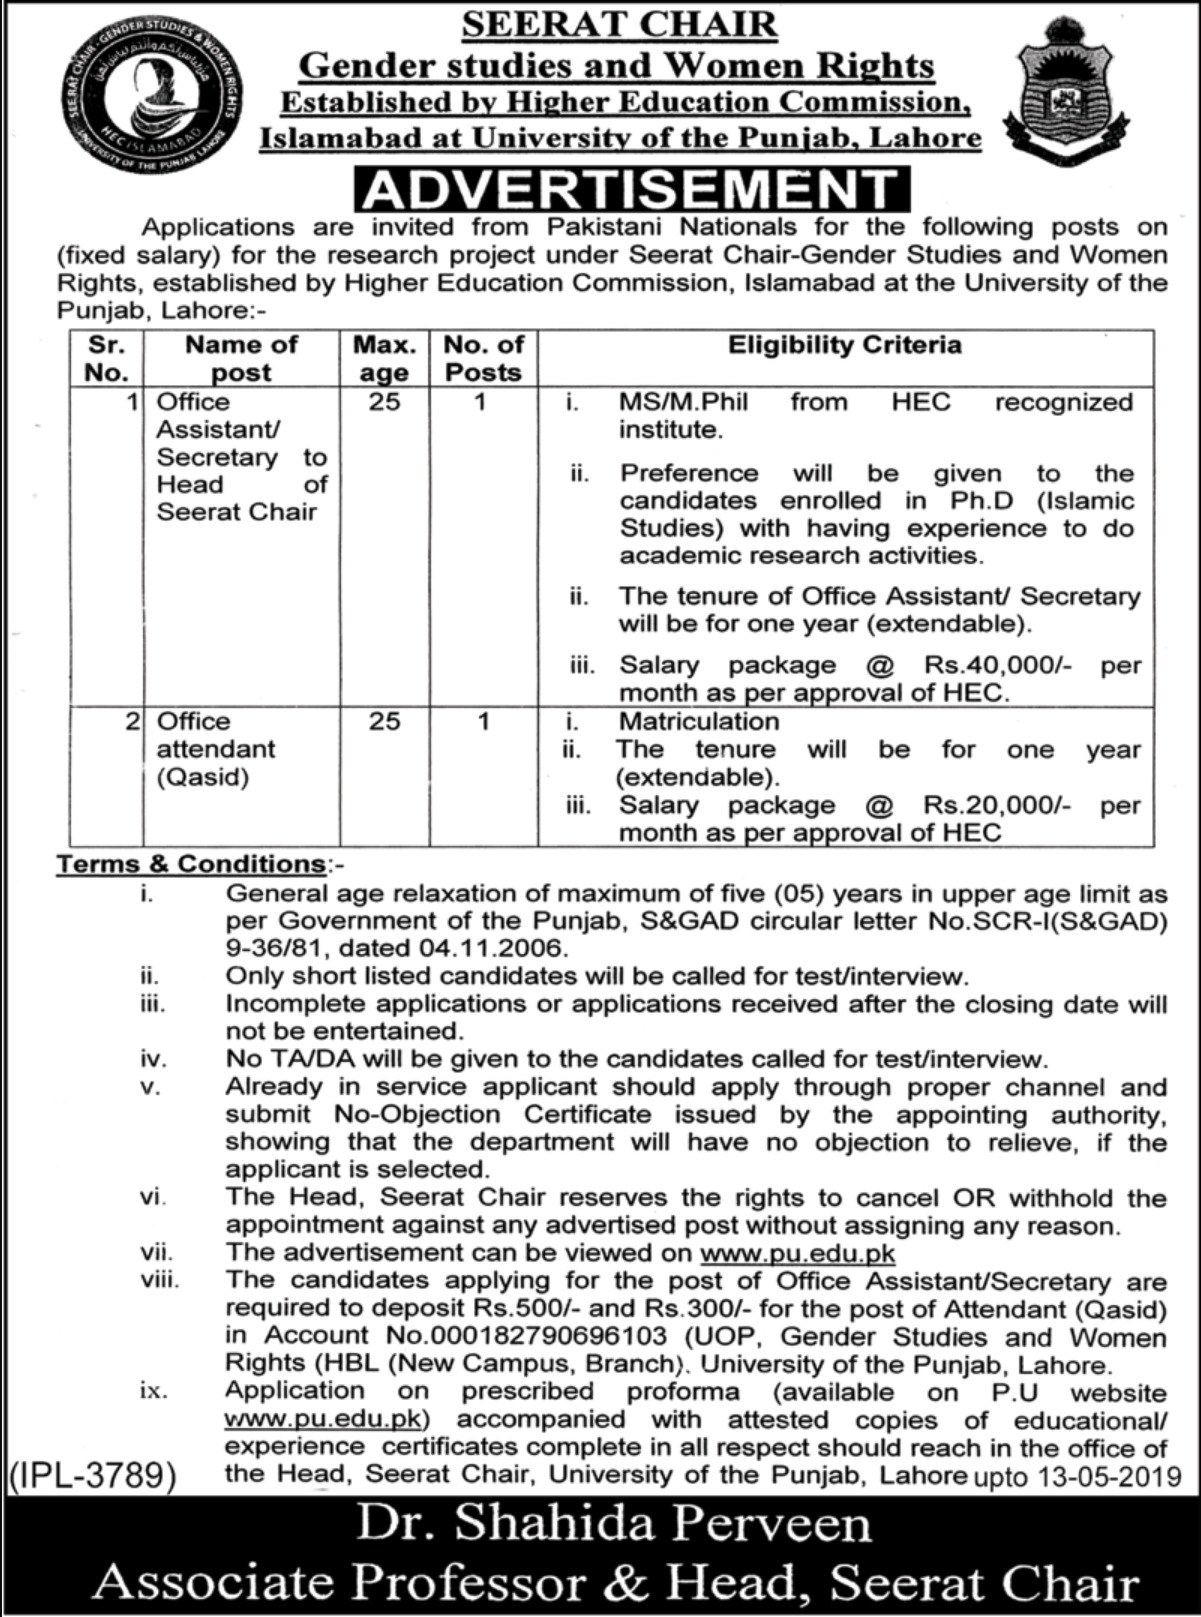 University of the Punjab Lahore Jobs 2019 Seerat Chair Gender Studies & Women RightsUniversity of the Punjab Lahore Jobs 2019 Seerat Chair Gender Studies & Women Rights